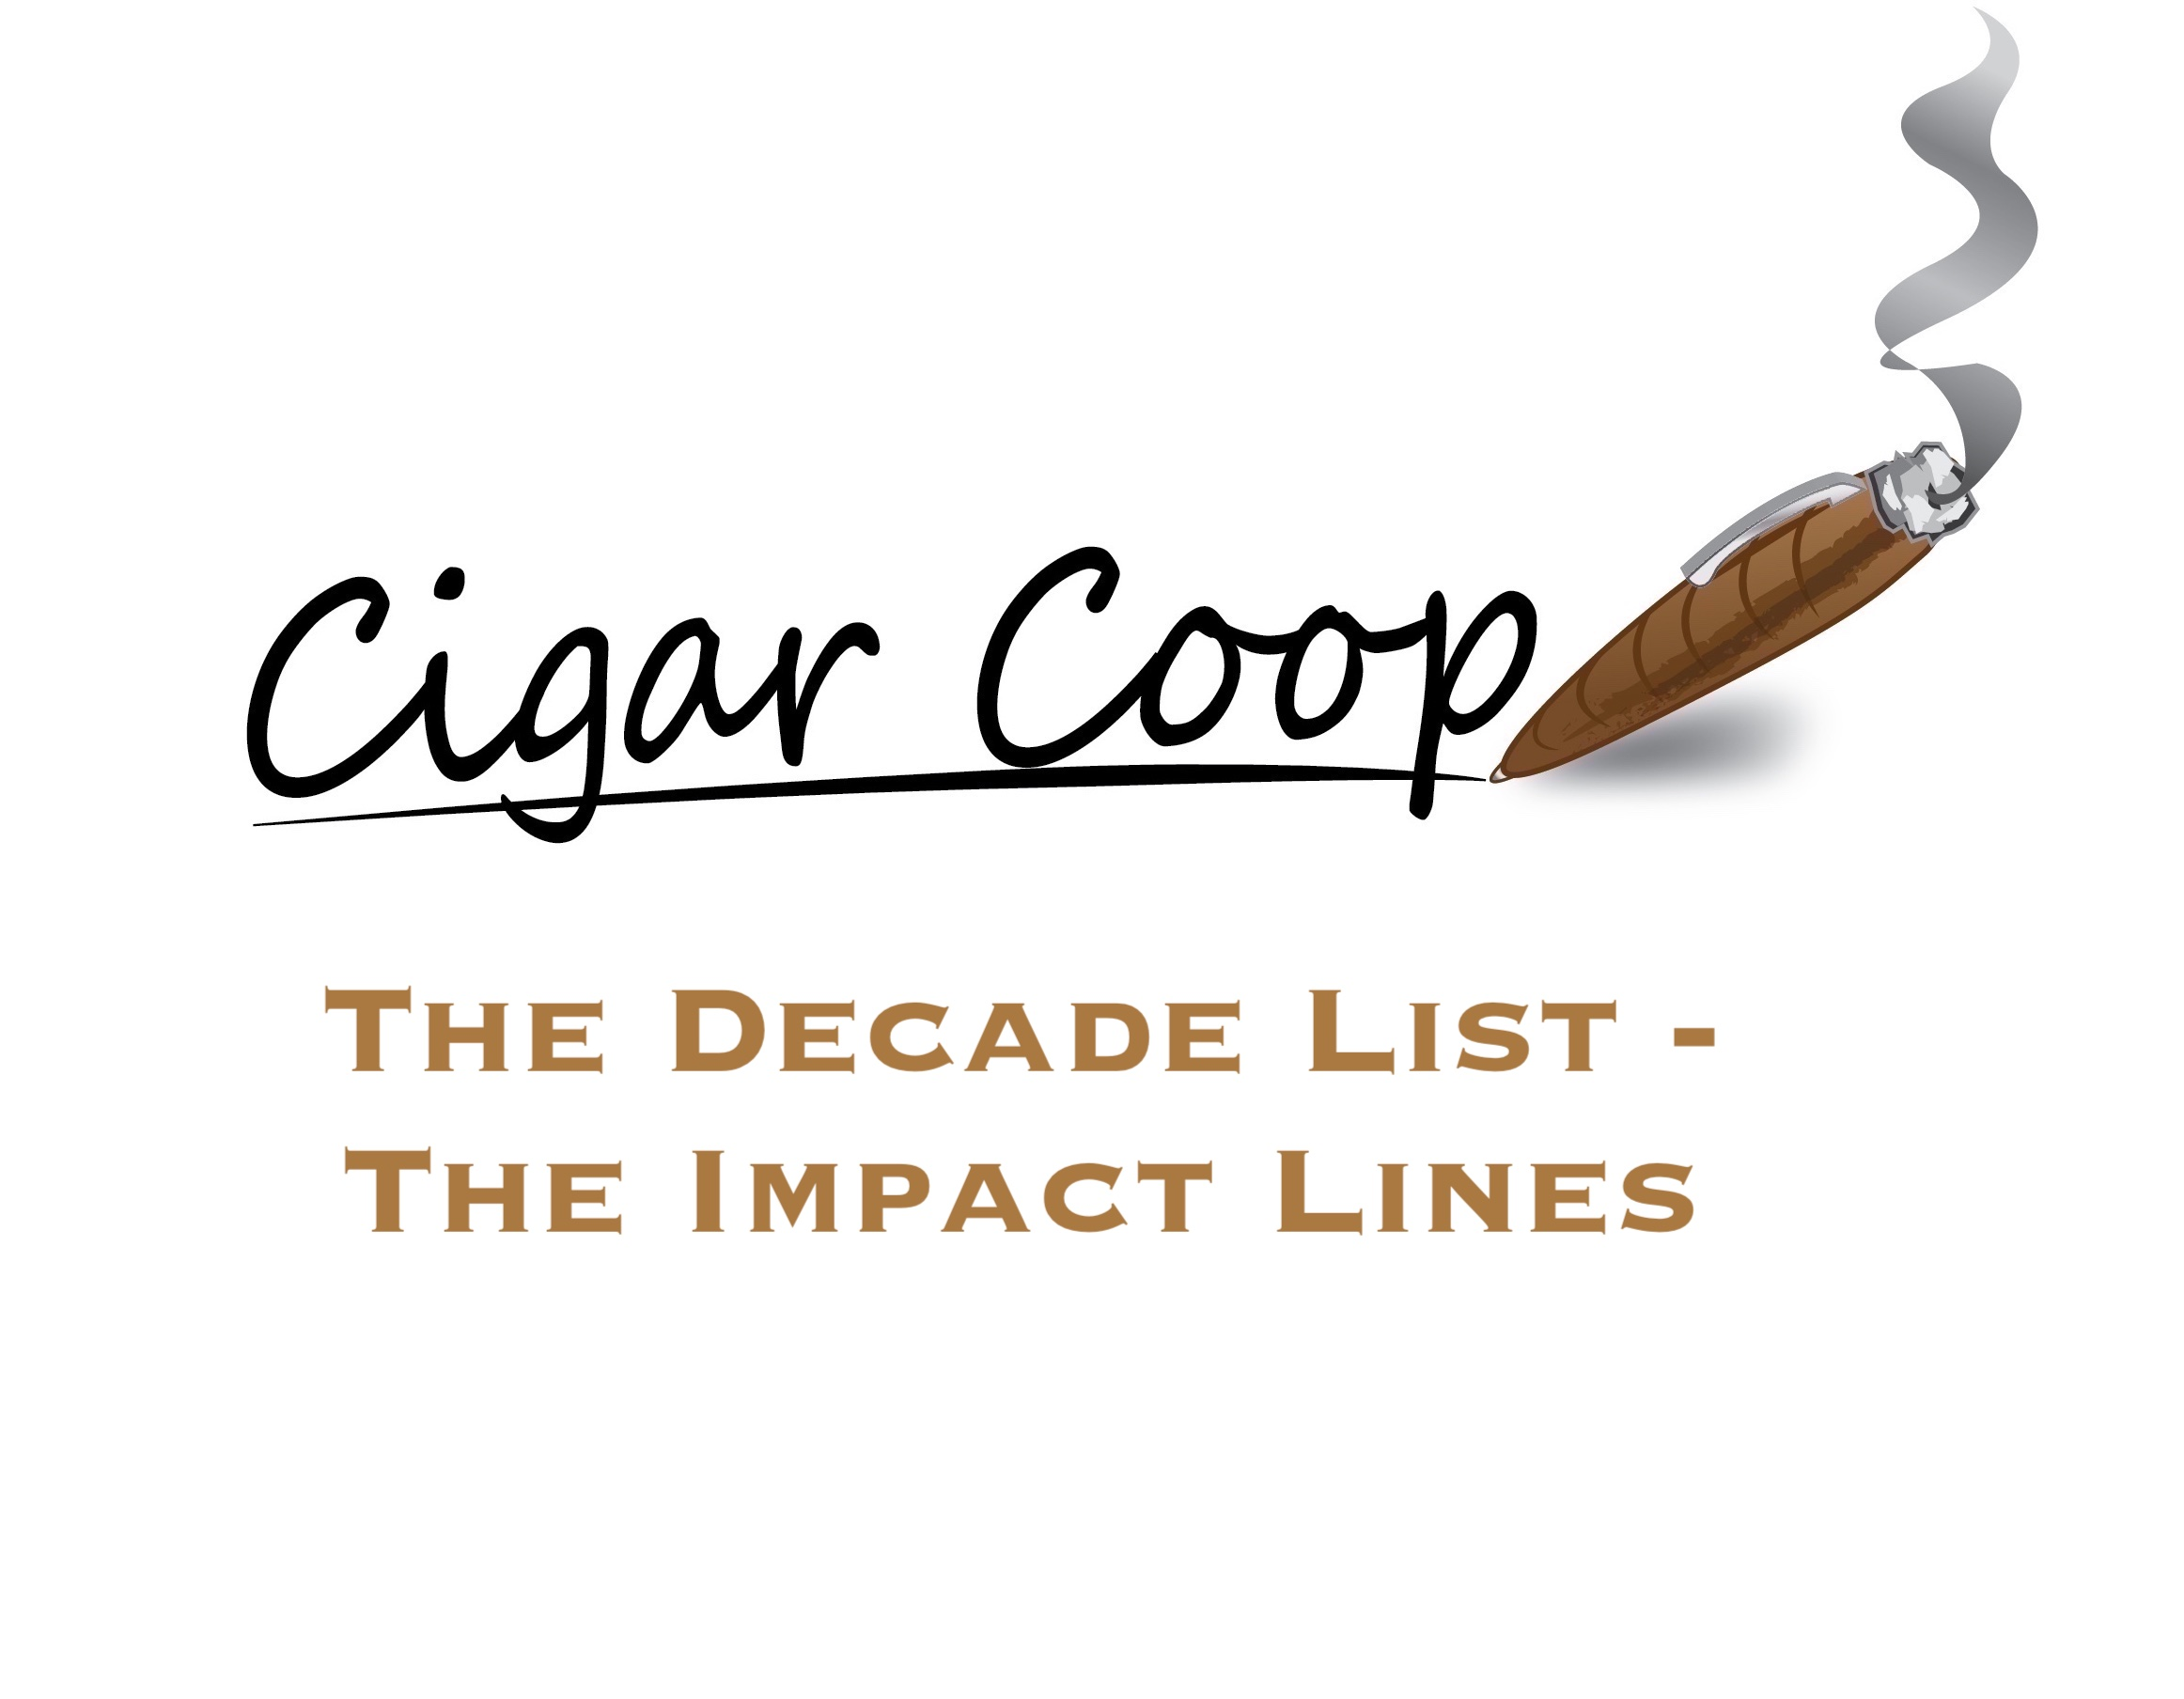 Feature Story: The Decade List – The Impact Lines